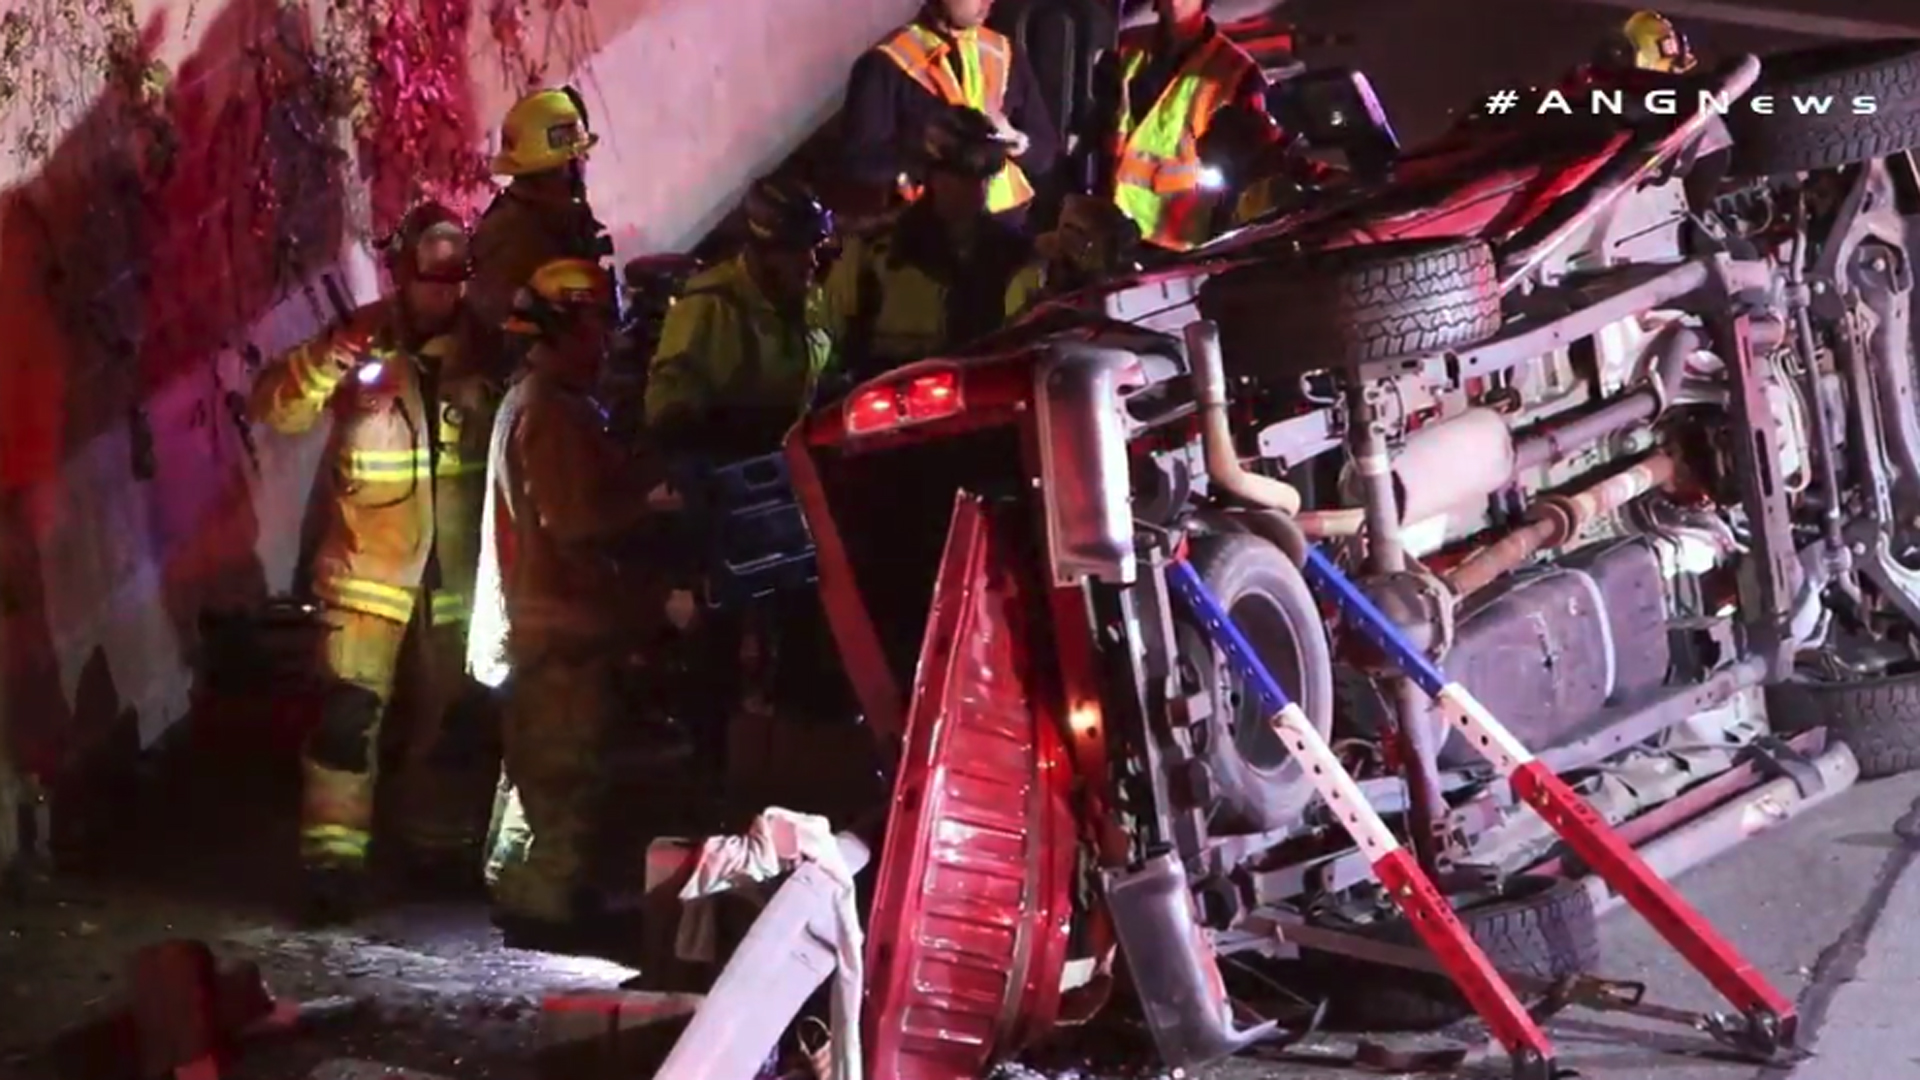 A vehicle overturned in a four-vehicle crash on the 22 Freeway in Garden Grove on Jan. 1, 2019. (Credit: AMGNews)